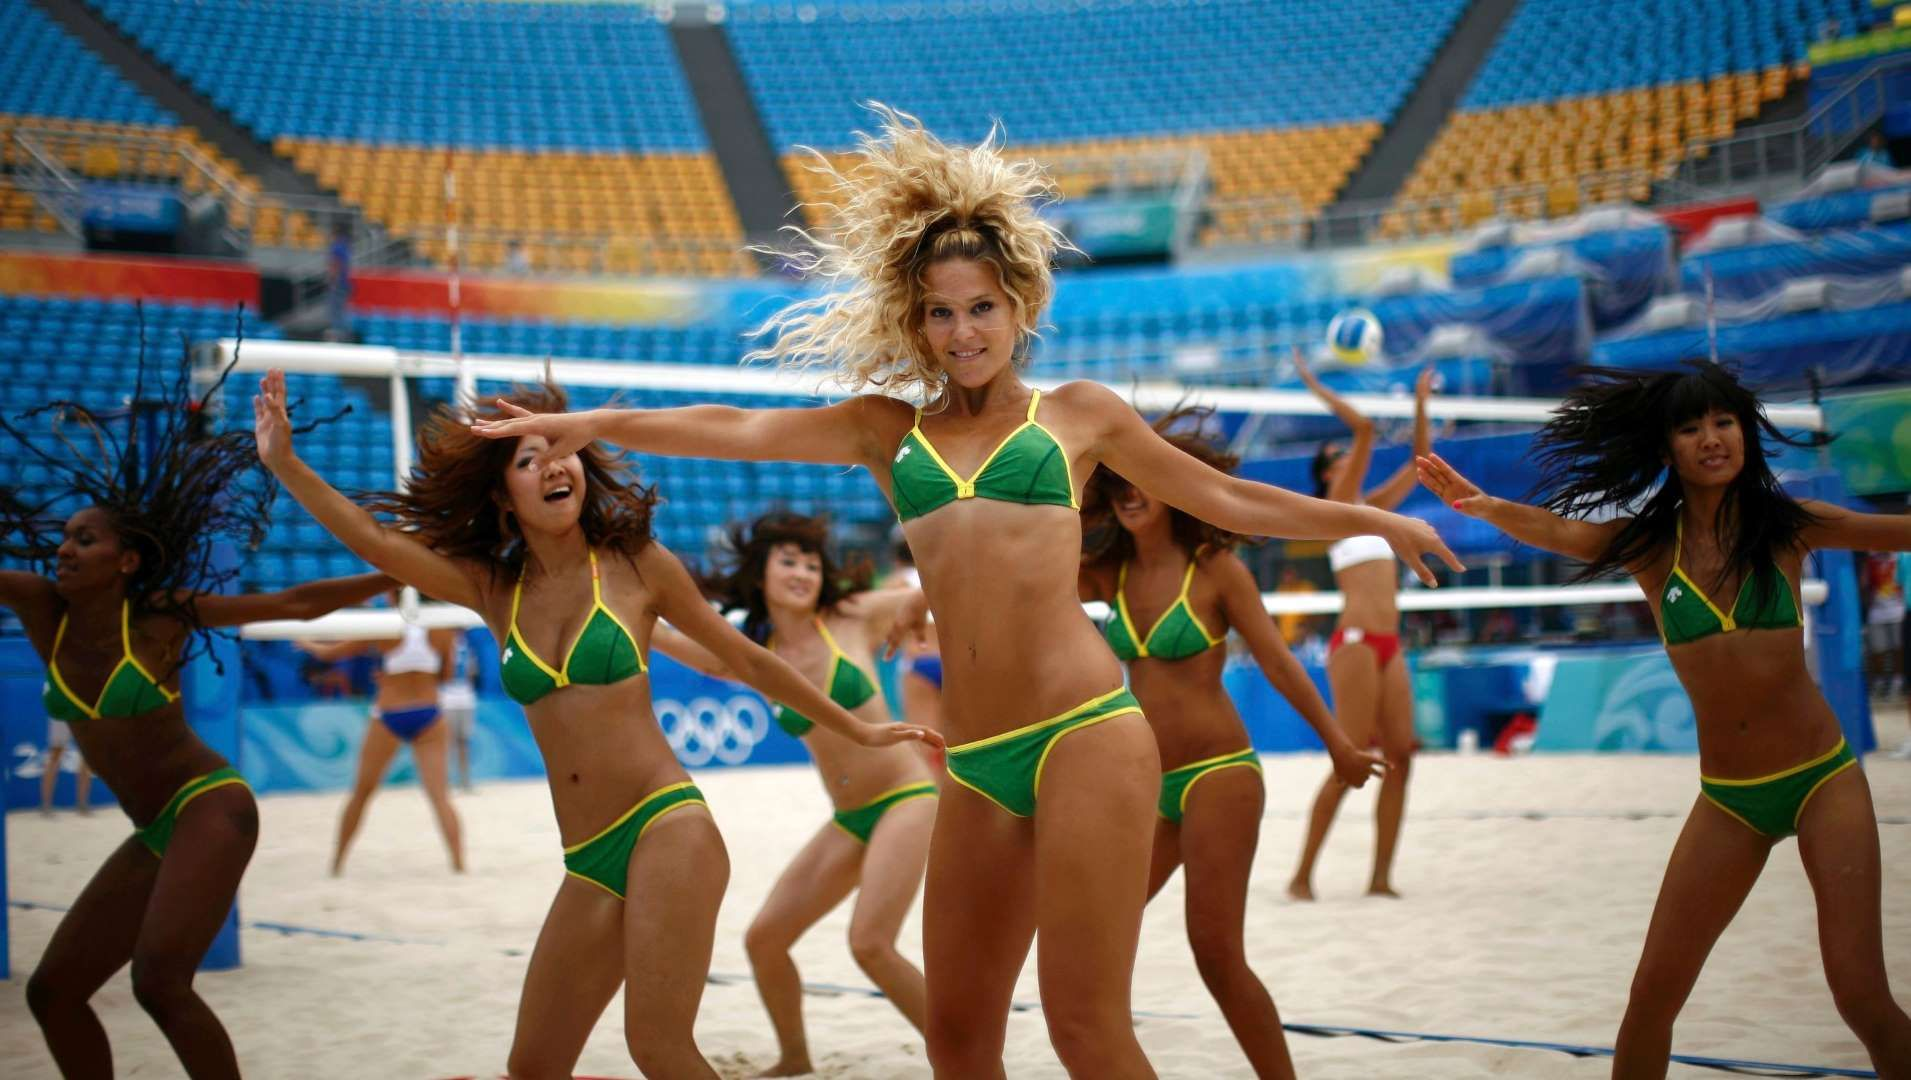 Cheerleaders Perform During A Training Session For The Beach Volleyball Events Ahead Of The Beijing 2008 Olympic Games Rio Olympics 2016 Cheerleading Olympics